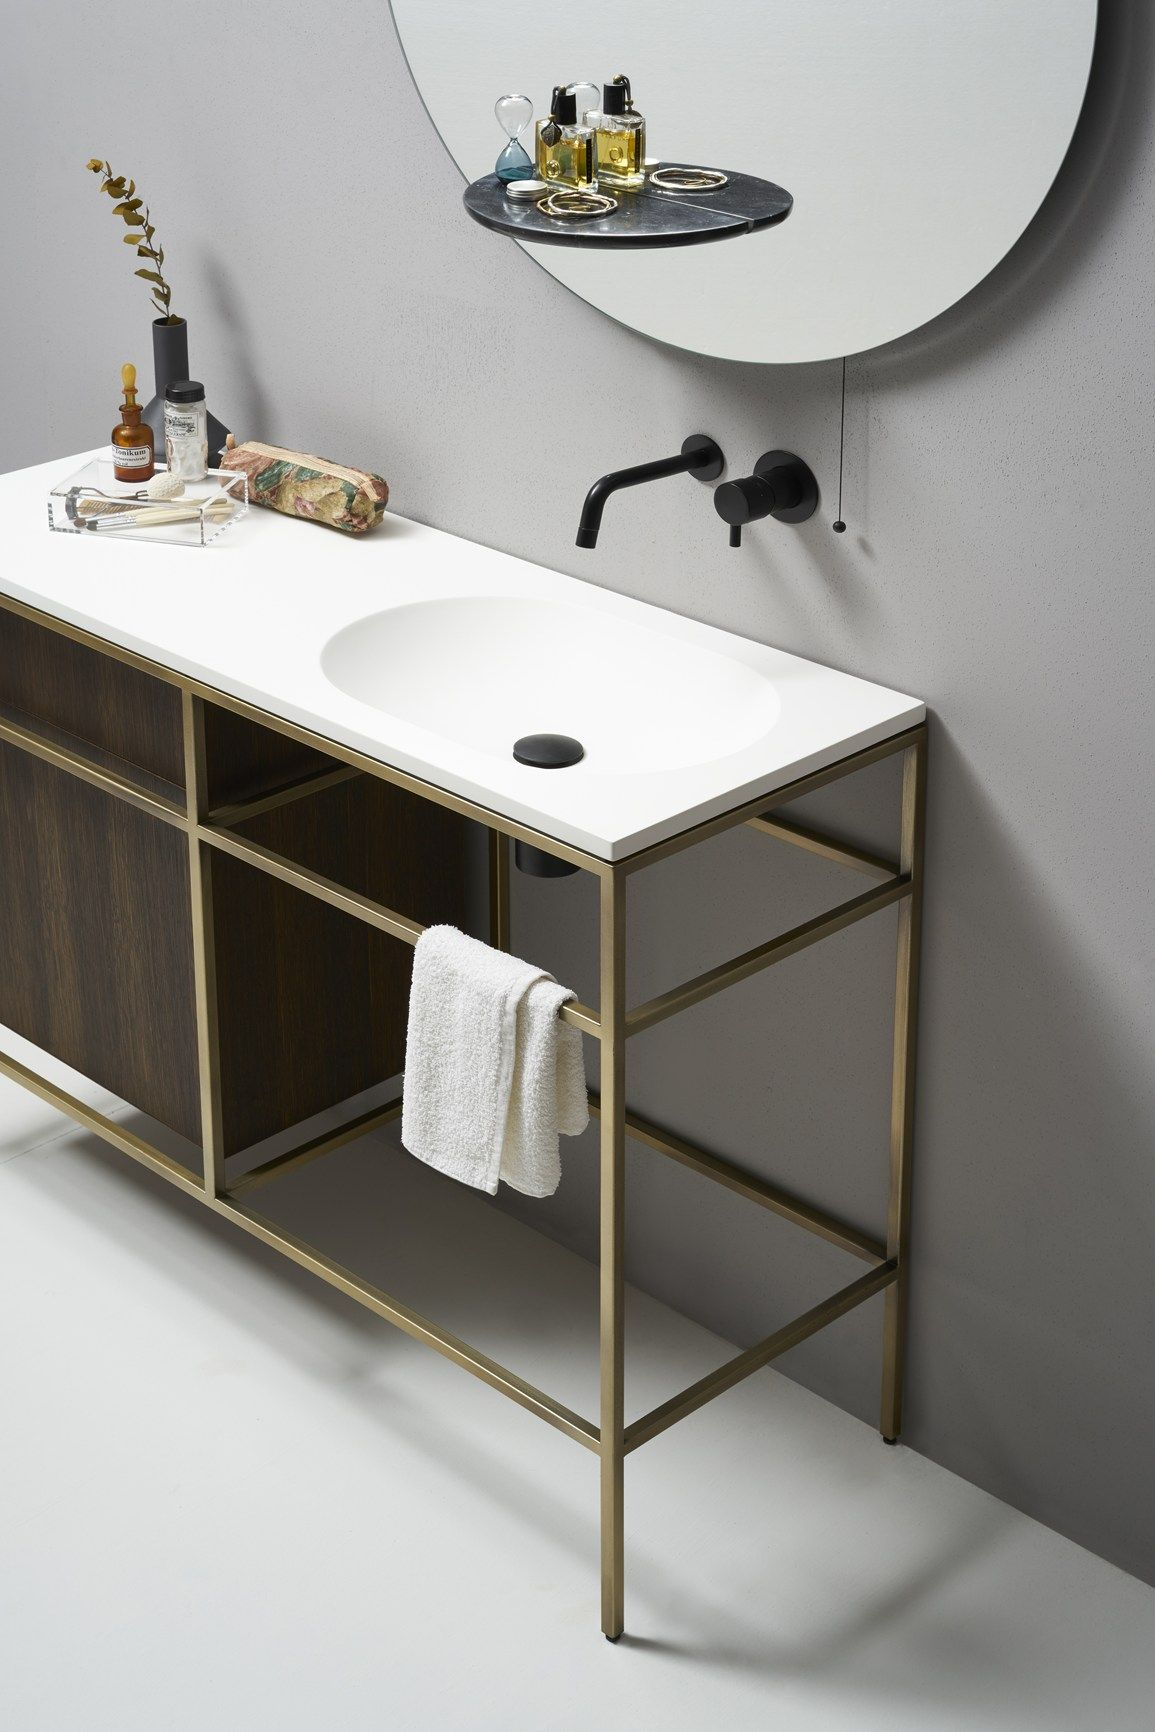 Bathroom Furniture Inspired By The Home Design World Ex T New